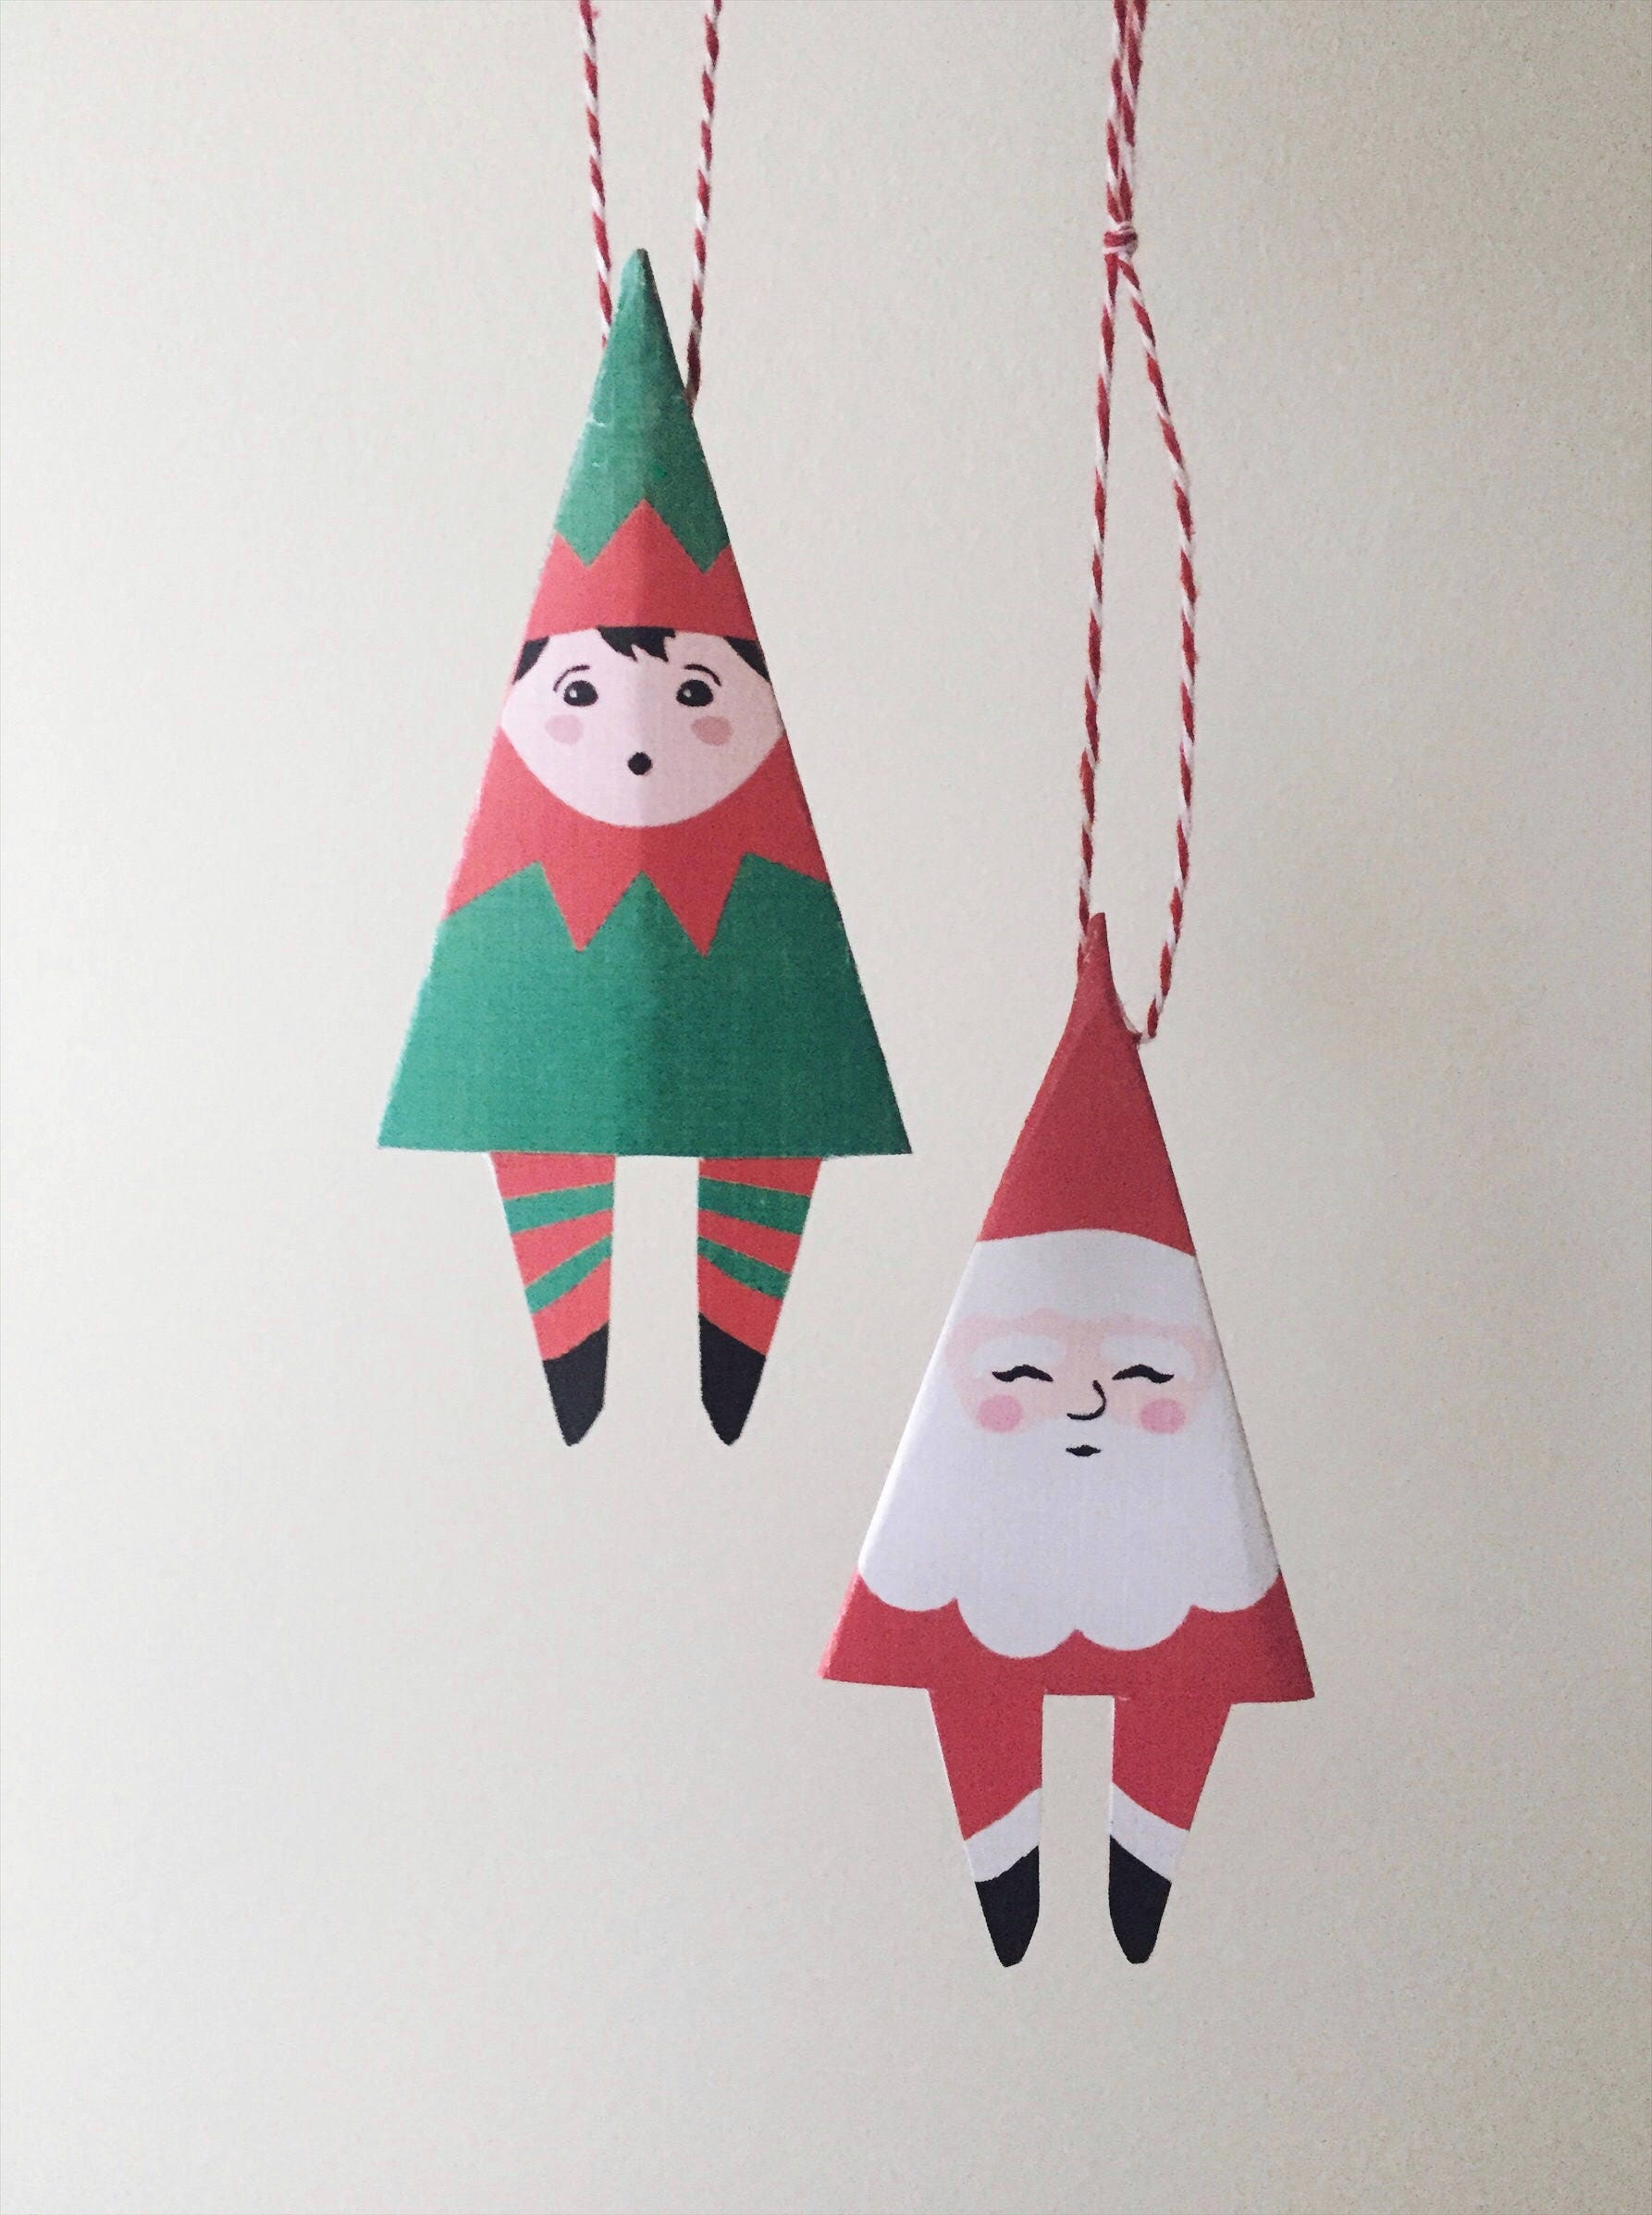 Printable Christmas Ornaments Decor, Santa Claus Elf Ornament